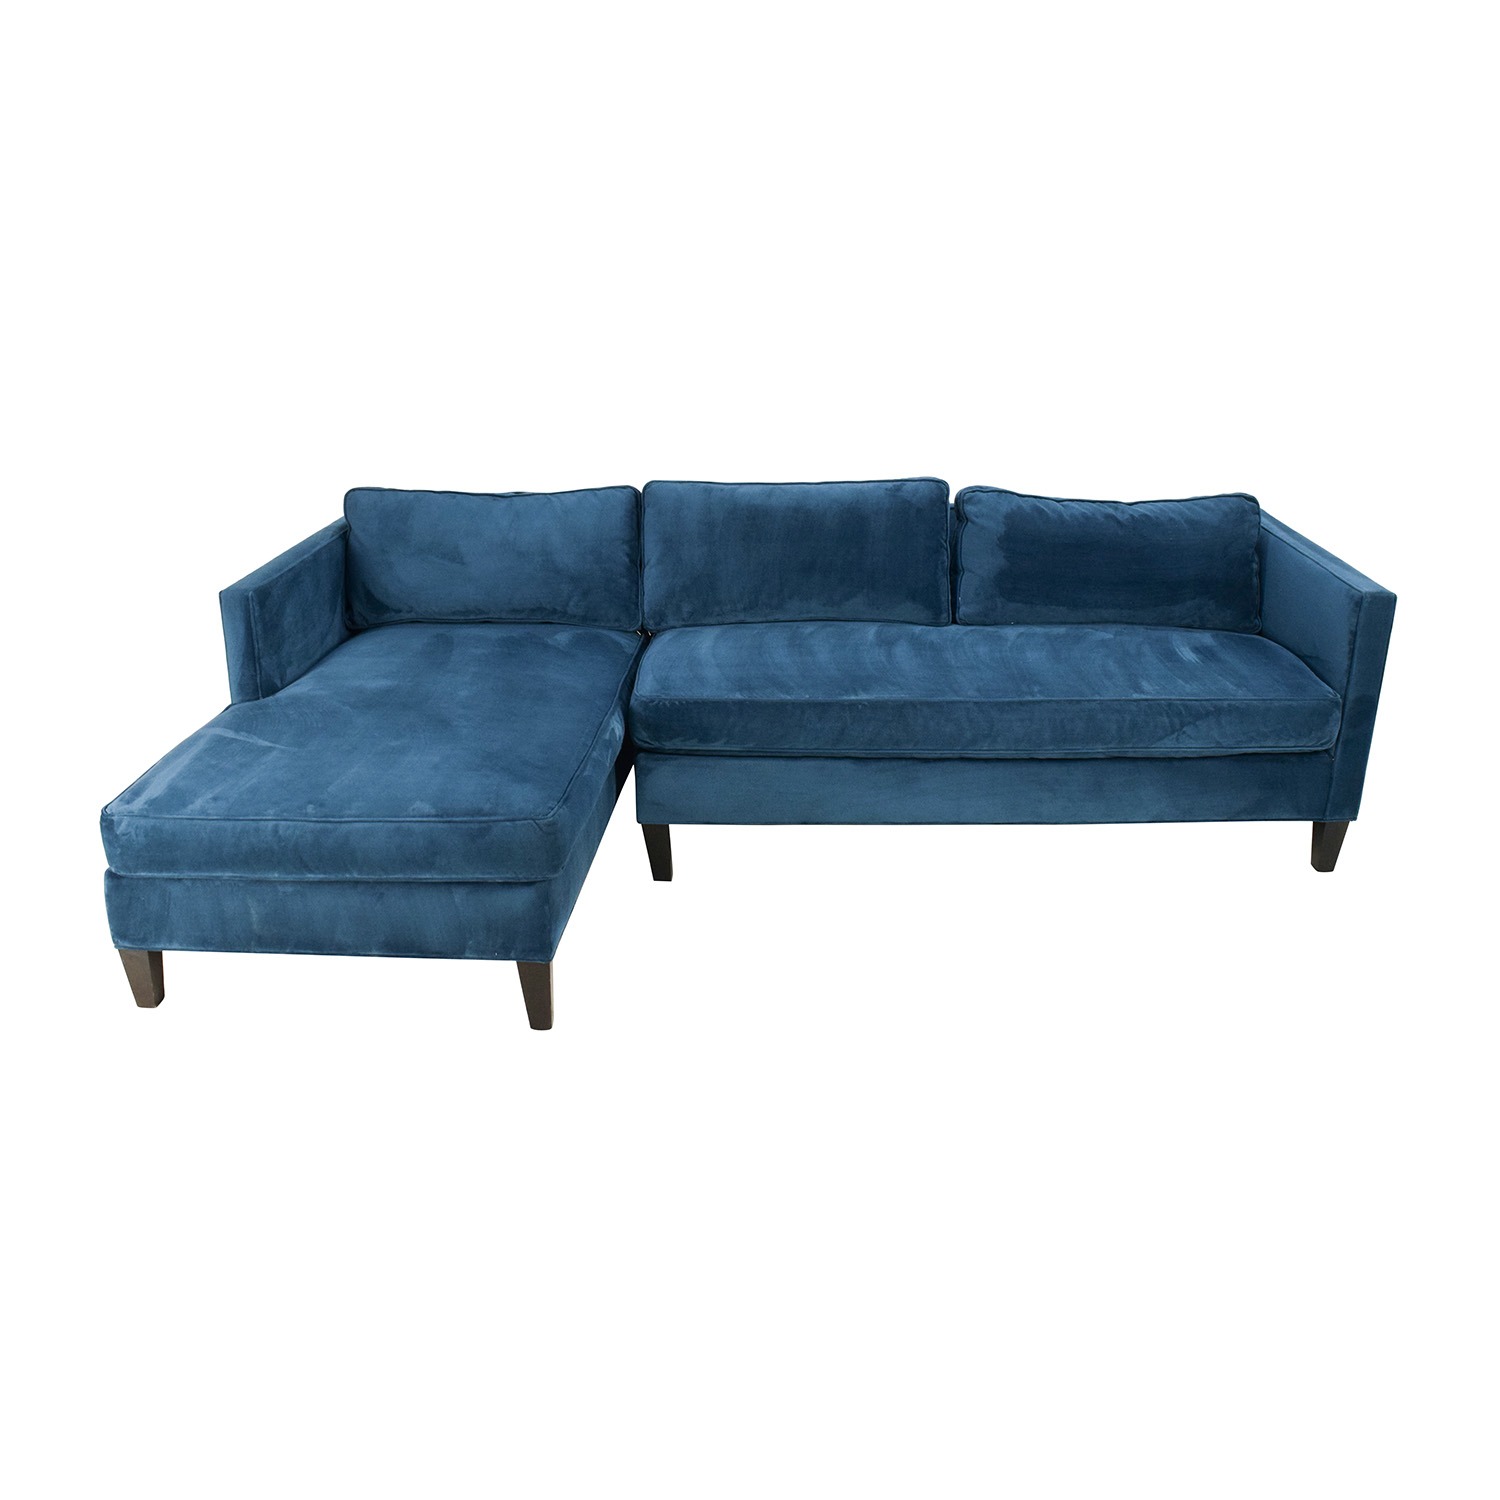 dunham sofa room and board oxford pop up platform sleeper sectional online low price sofas